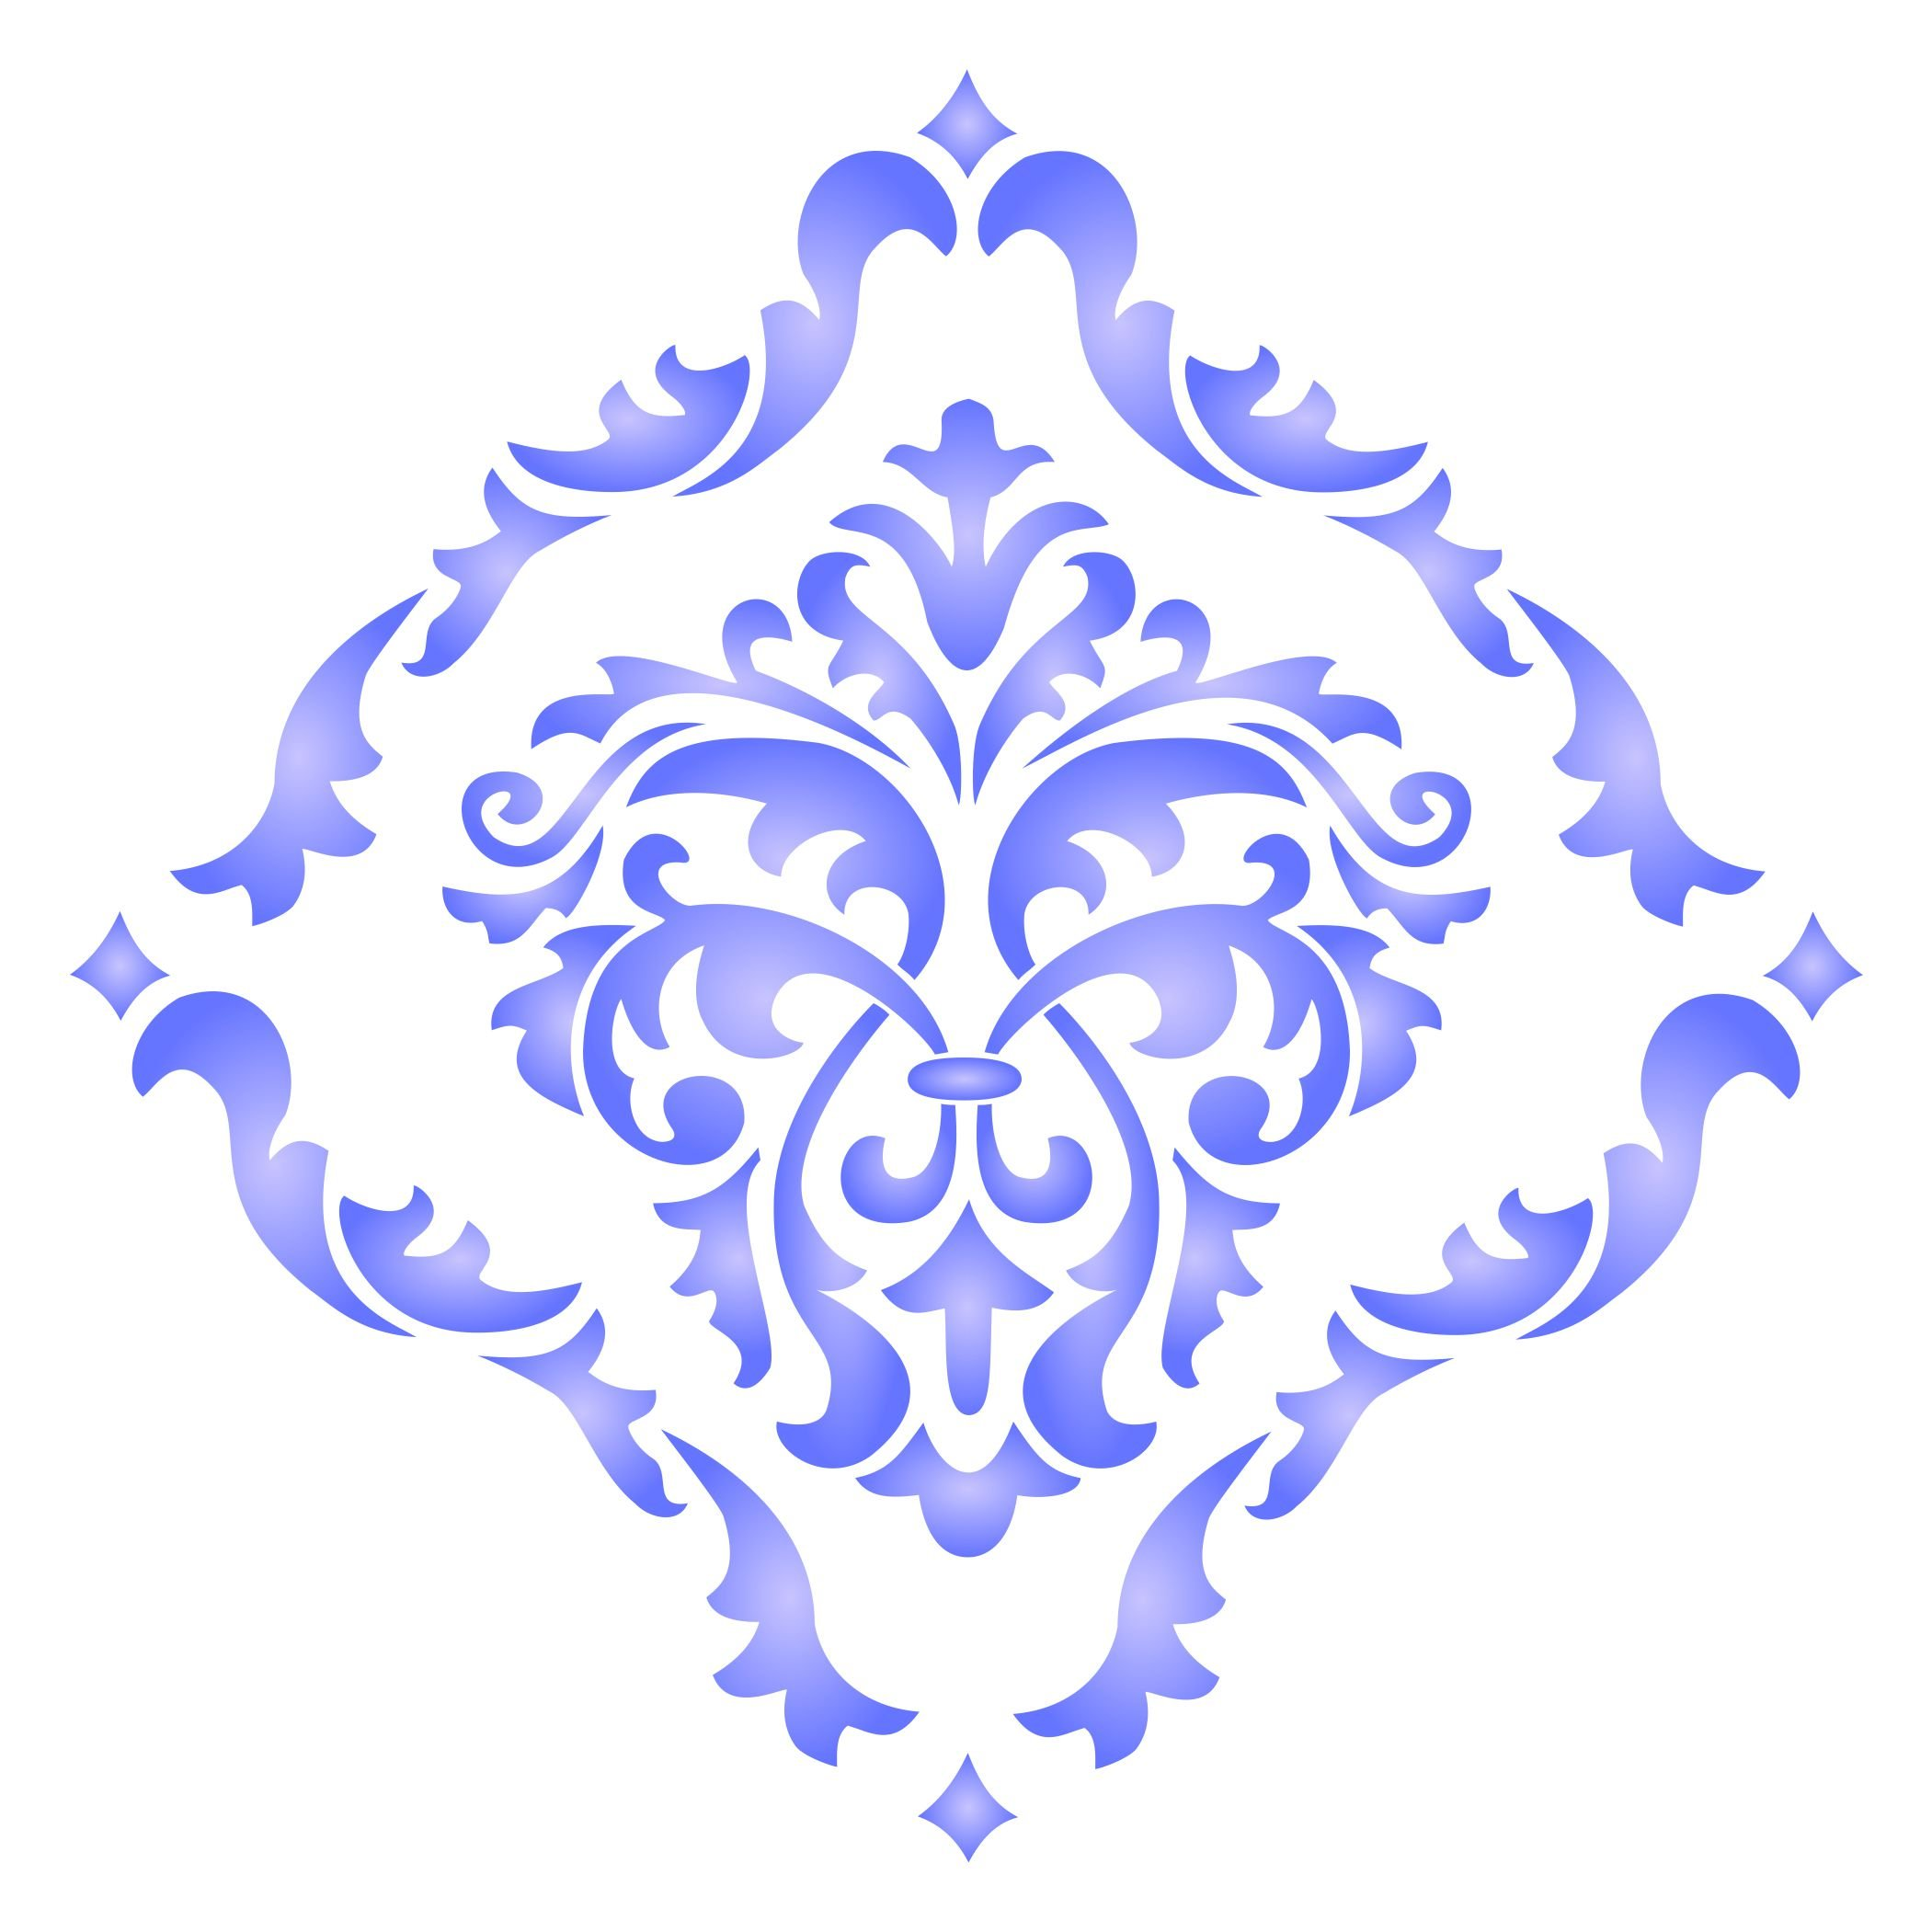 Damask Stencil - (size 14''w x 14''h) Reusable Wall Stencils for Painting - Best Quality Allover Wallpaper ideas - Use on Walls, Floors, Fabrics, Glass, Wood, Terracotta, and More...... by Stencils for Walls